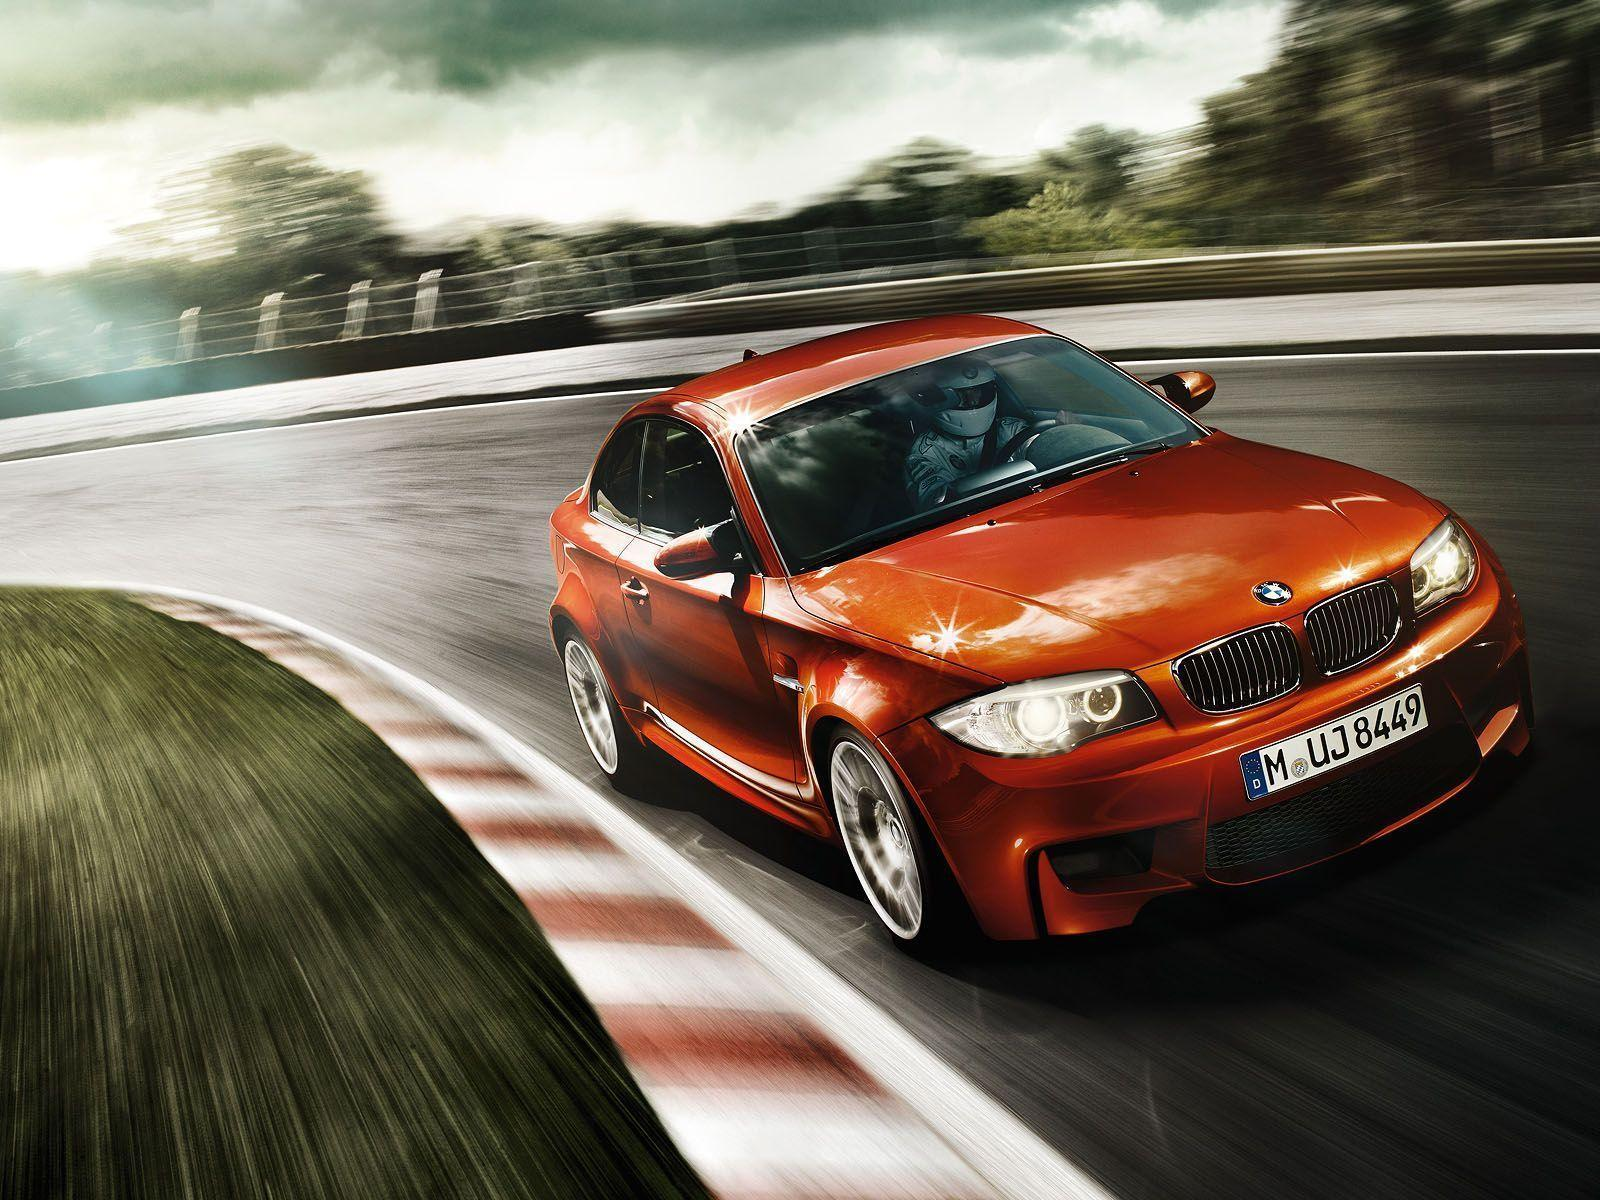 BMW M Coupe Wallpapers